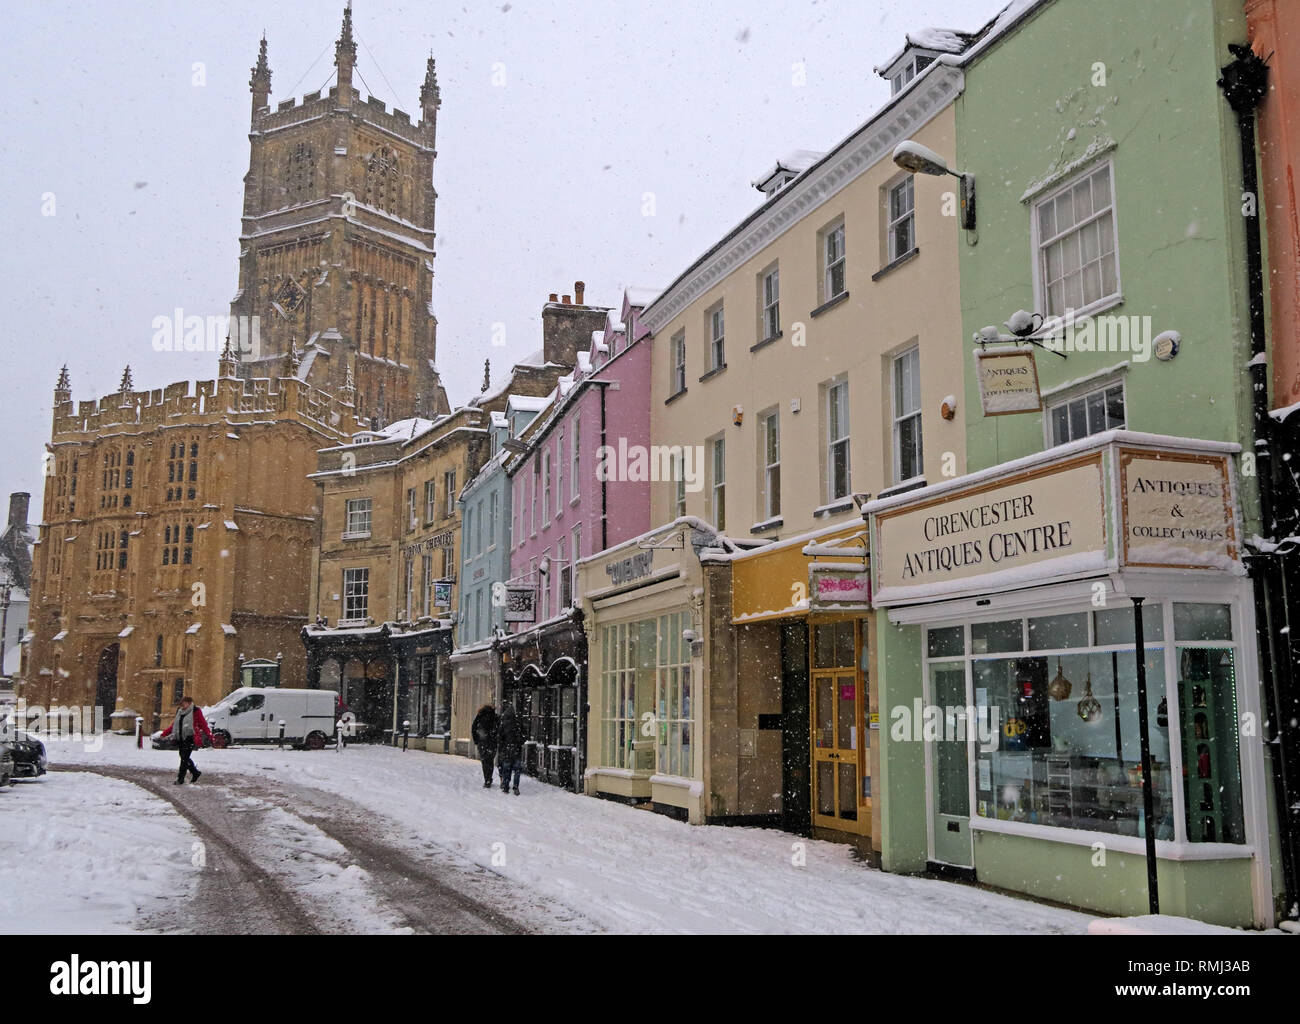 @HotpixUK,HotpixUK,GoTonySmith,England,UK,snow,cold weather,winter,weather,Christmas,card,scene,cold,colder,tourist,tourism,travel,Oxfordshire,market,town,centre,in winter,Roman,stone,buildings,architecture,Cotswold Architecture,Cotswolds,Cotswold,South West England,market place,market pl,white,pink,teal,grade II,listed,building